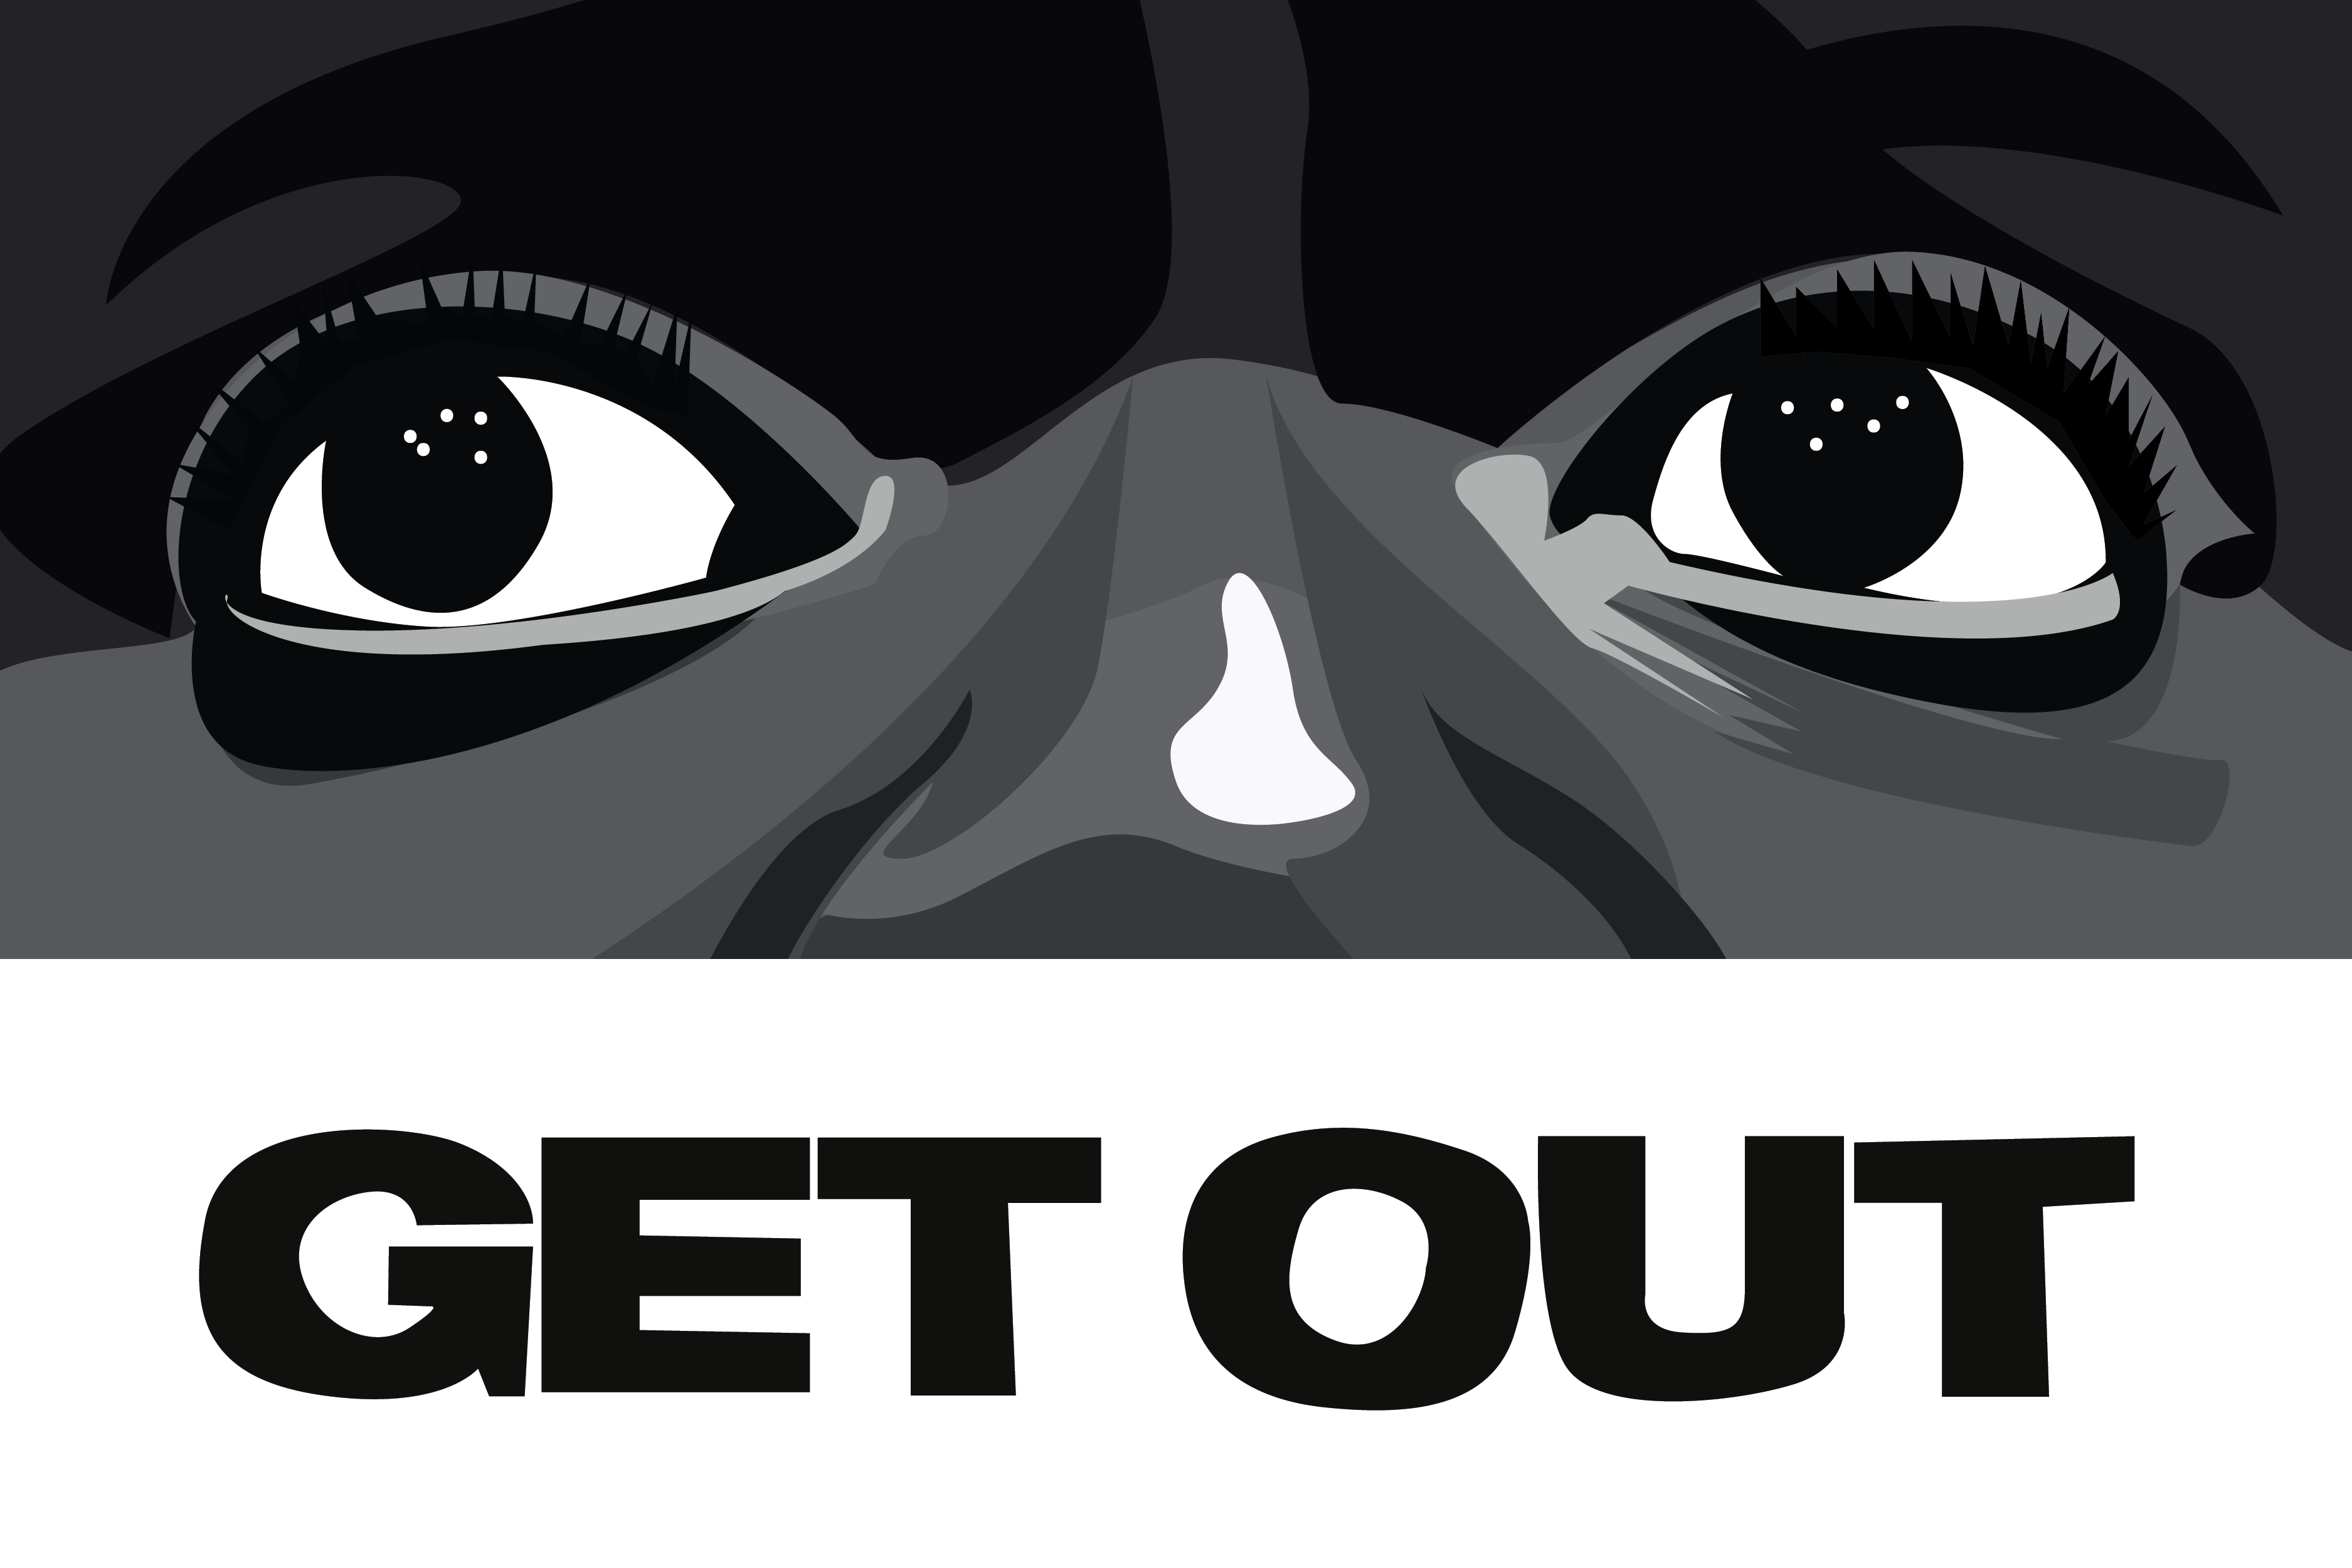 The cultural phenomenon of Get Out